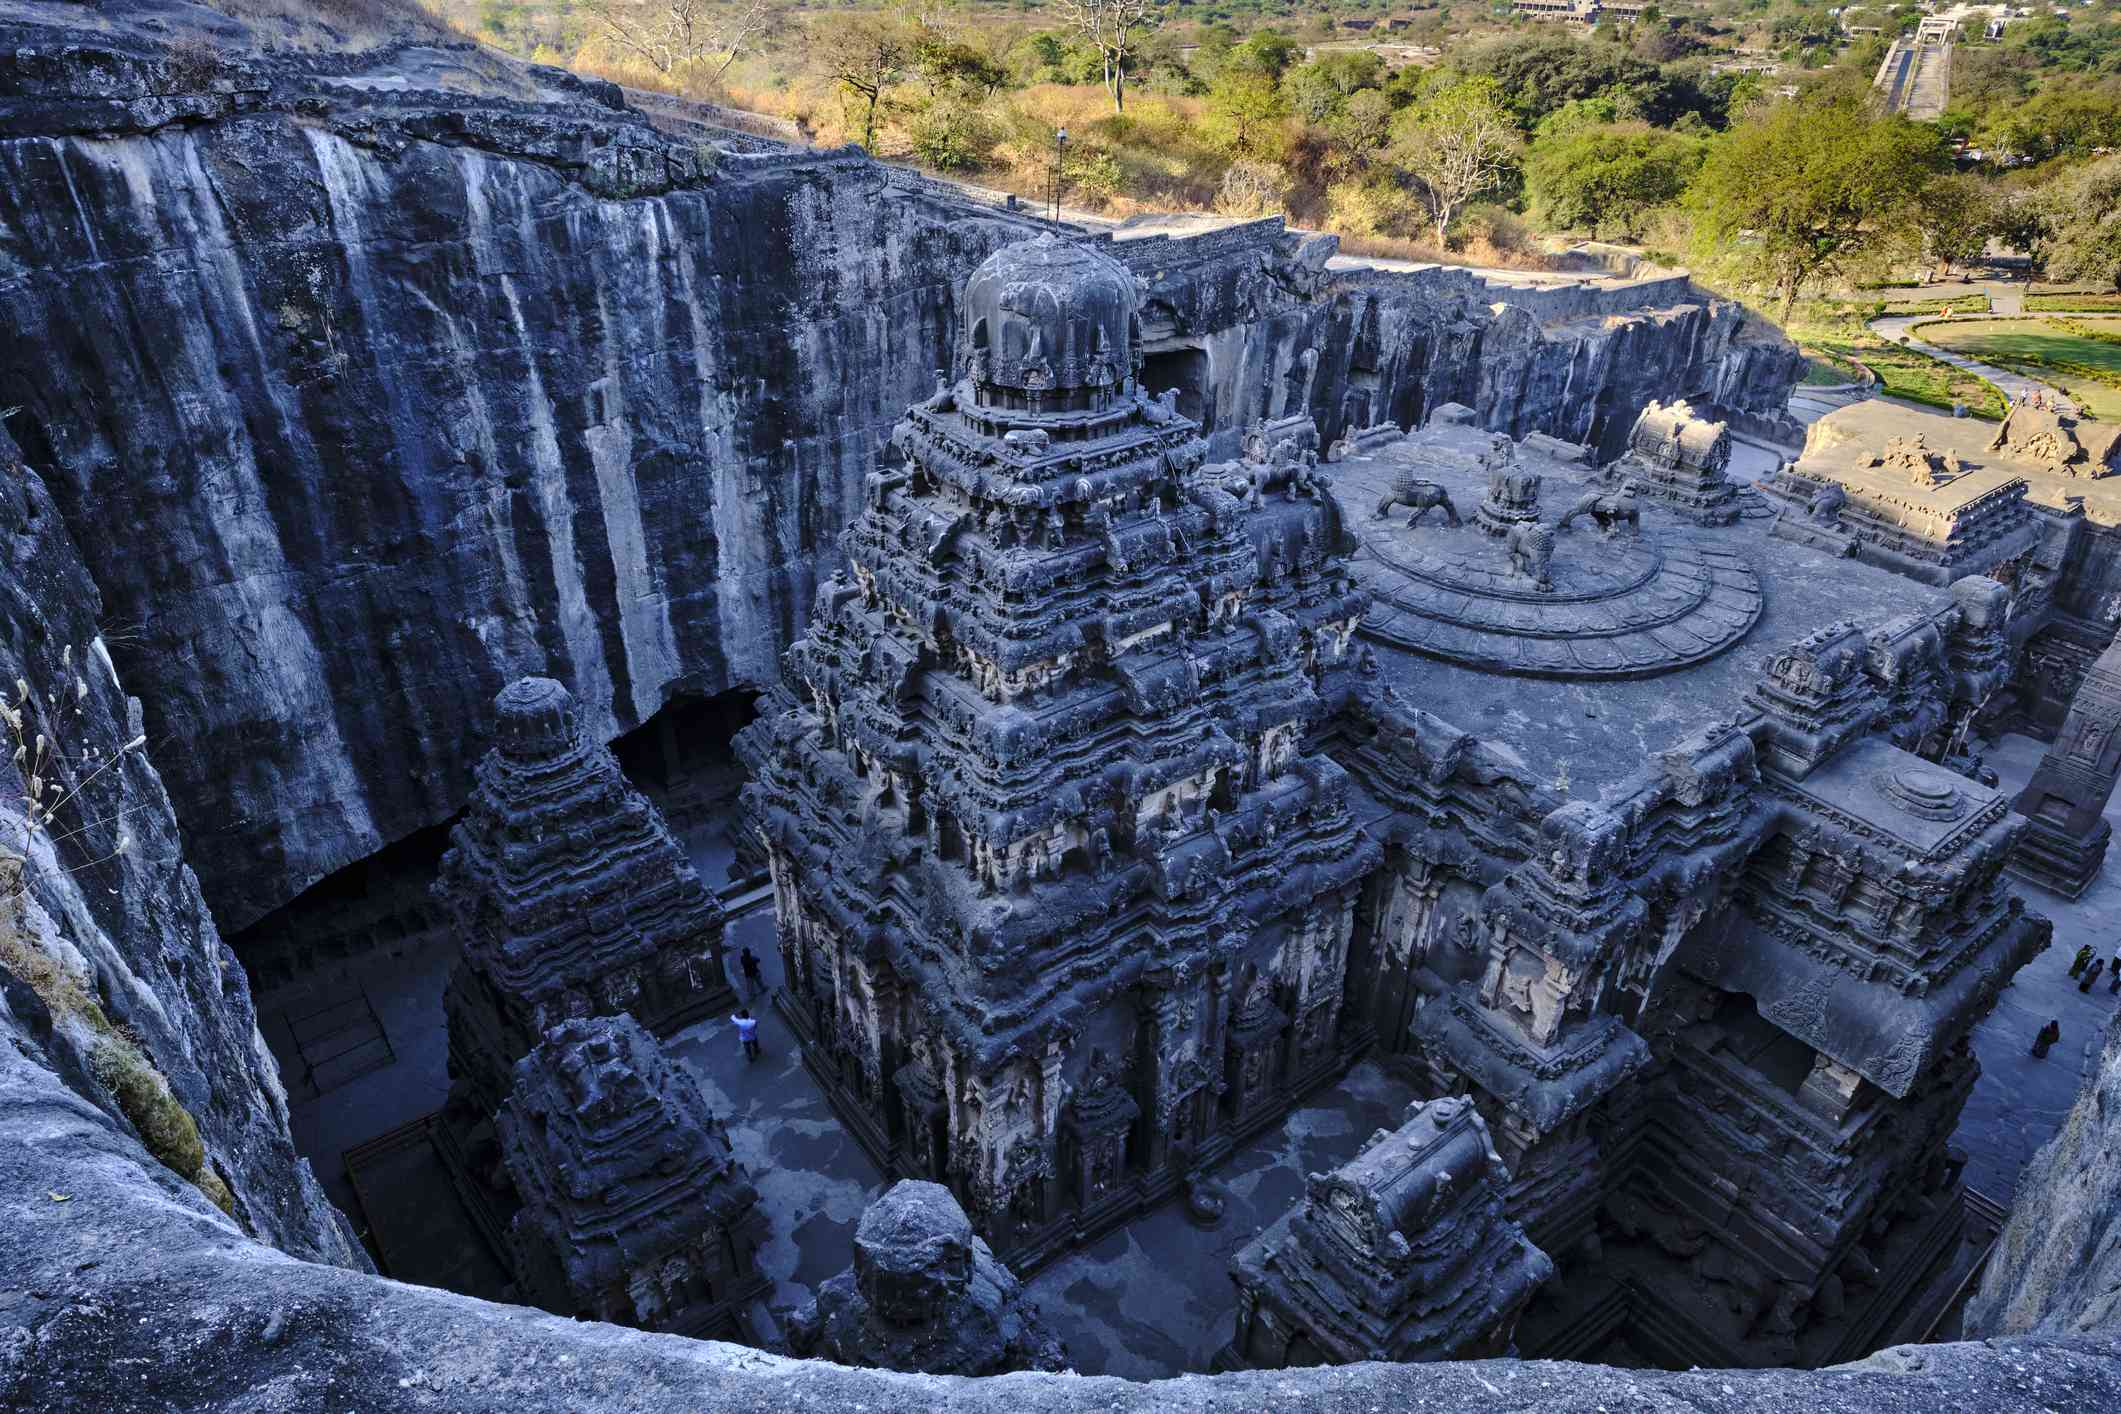 Aerial view of the Ellora cave temple surrounded by green foliage